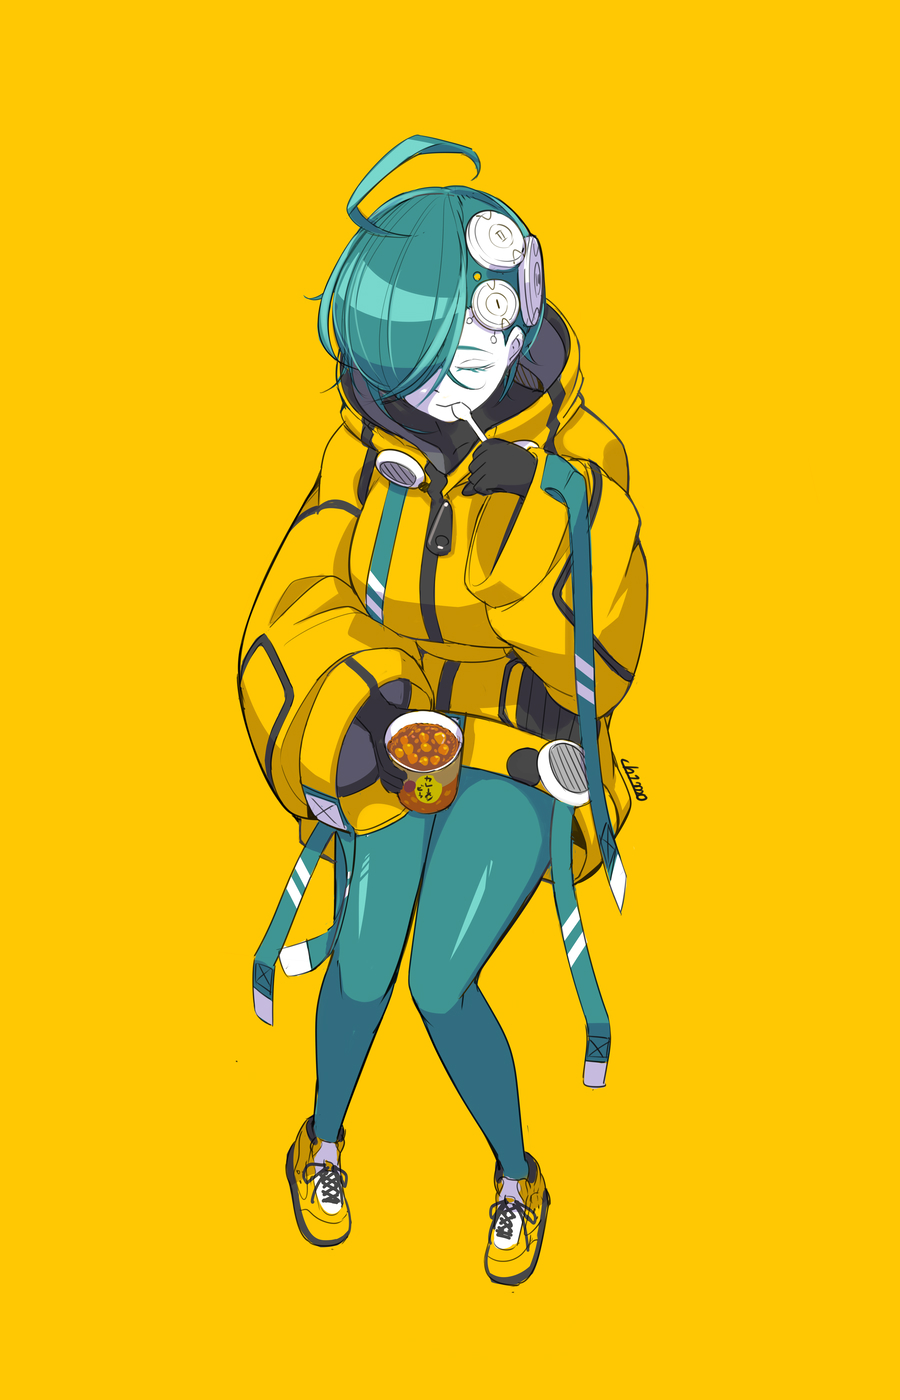 1girl ahoge aqua_hair aqua_legwear black_gloves breasts closed_eyes eating food full_body gloves hair_over_one_eye highres holding holding_food invisible_chair large_breasts original pale_skin shoes short_hair simple_background sitting solo spoon ub1mo yellow_background yellow_footwear zipper_pull_tab